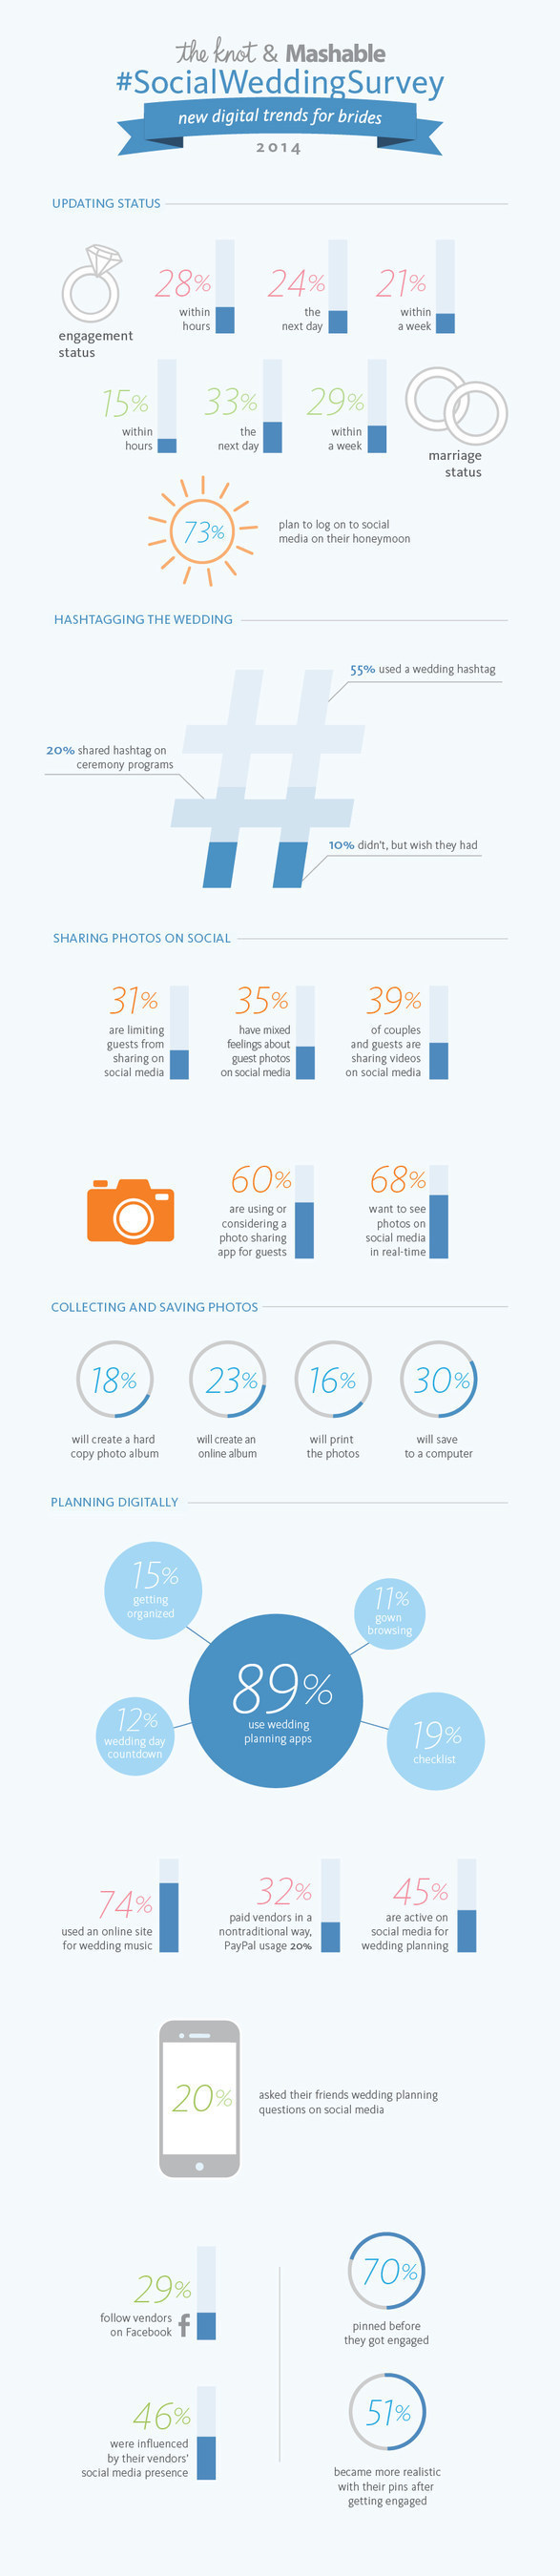 The Knot & Mashable #SocialWeddingSurvey Infographic (PRNewsFoto/TheKnot.com)